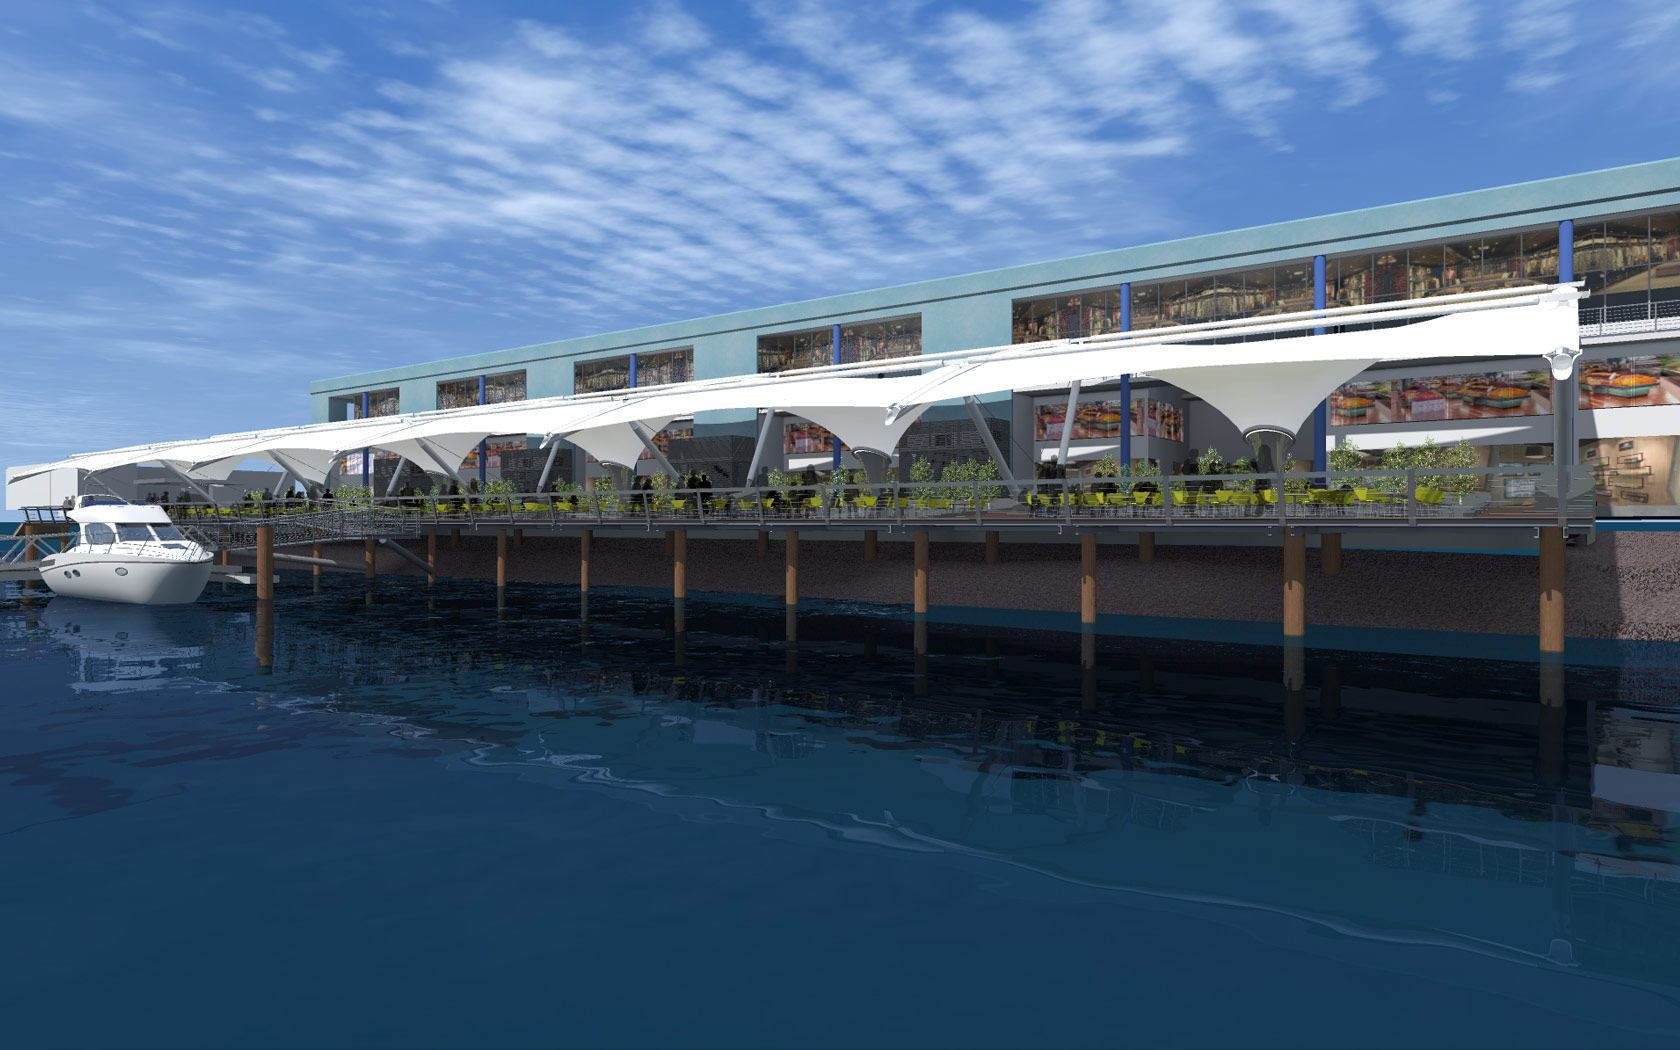 Sydney Fish markets design drawing of the outdoor seating water view